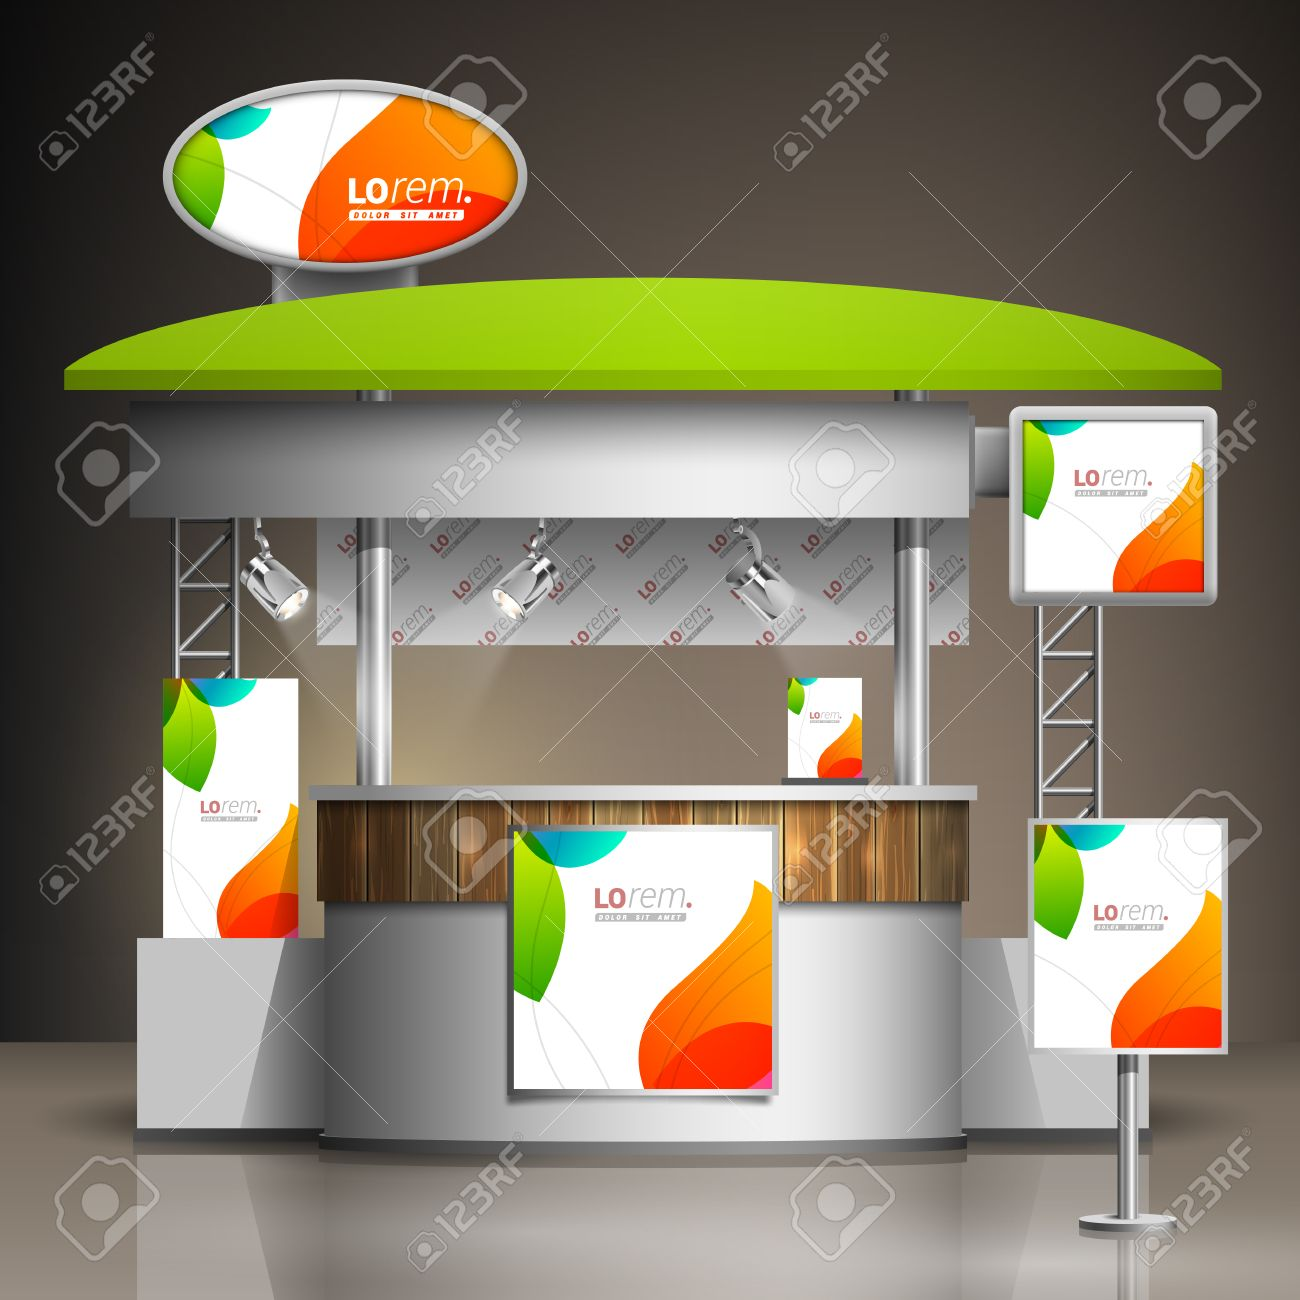 Exhibition Stand White : White creative exhibition stand design with color shapes booth